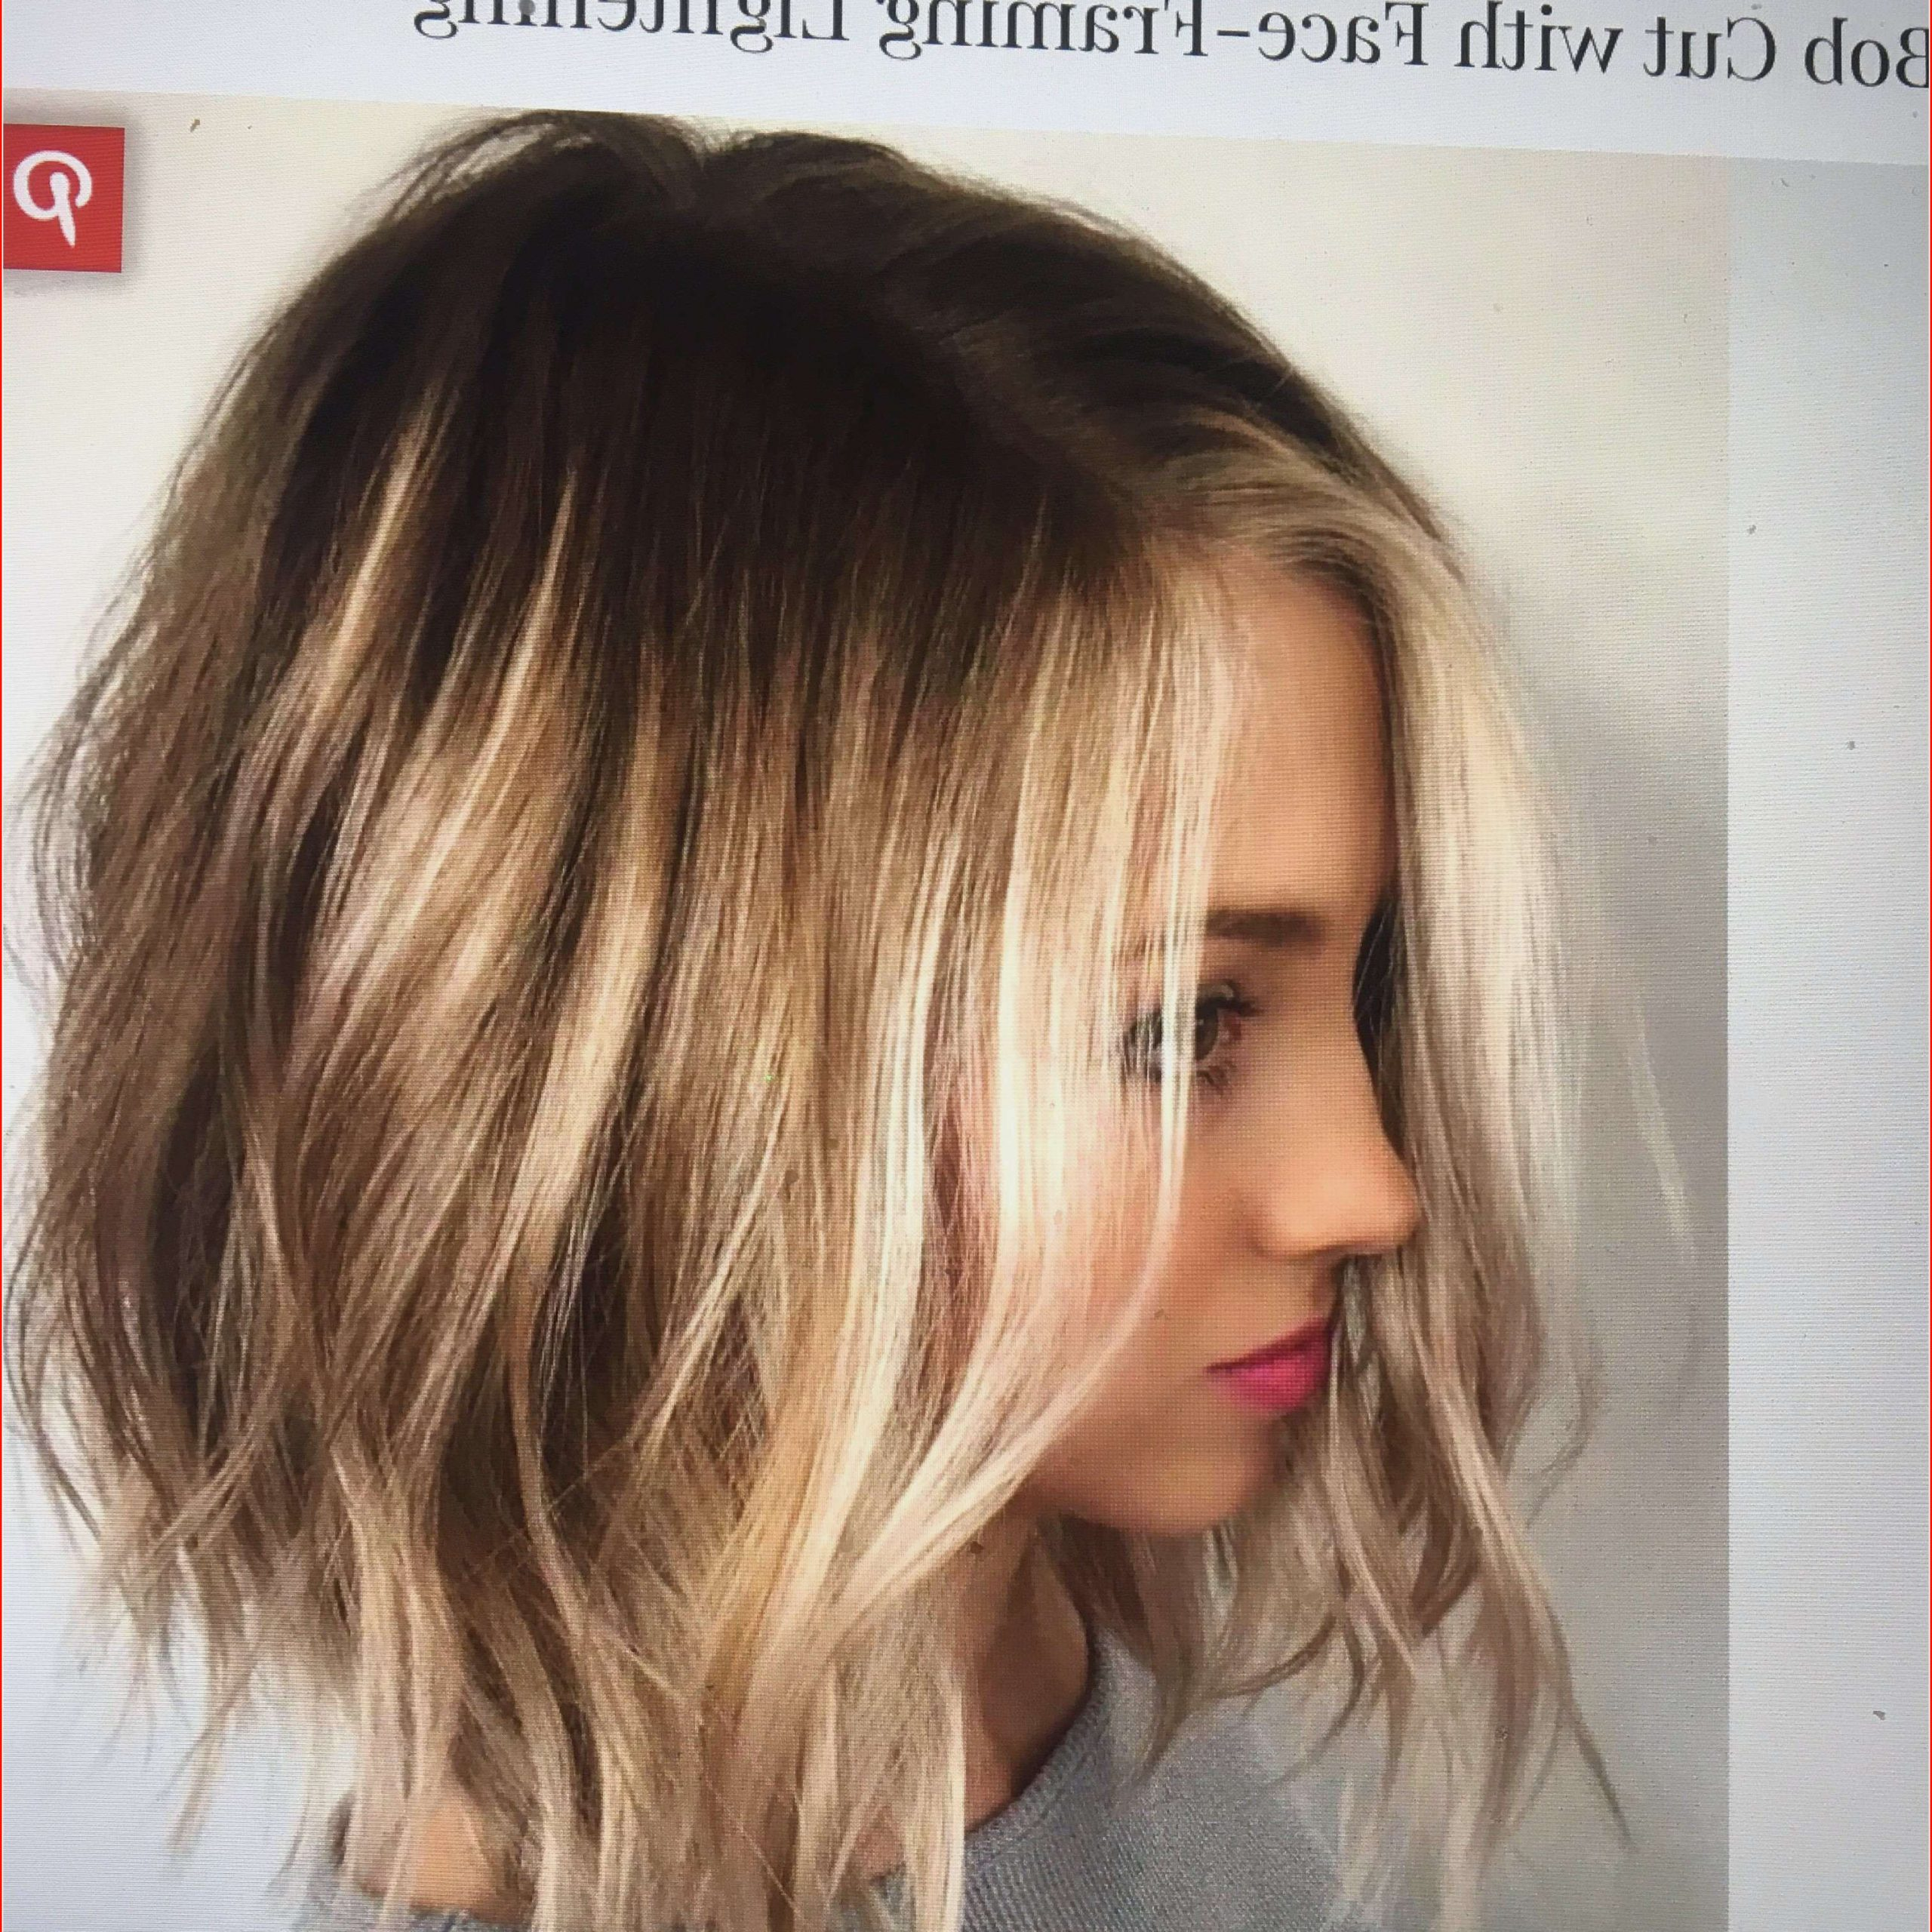 Widely Used Perfect Shaggy Bob Hairstyles For Thin Hair Within Unique Short To Mid Length Hairstyles For Fine Hair Photos (View 20 of 20)